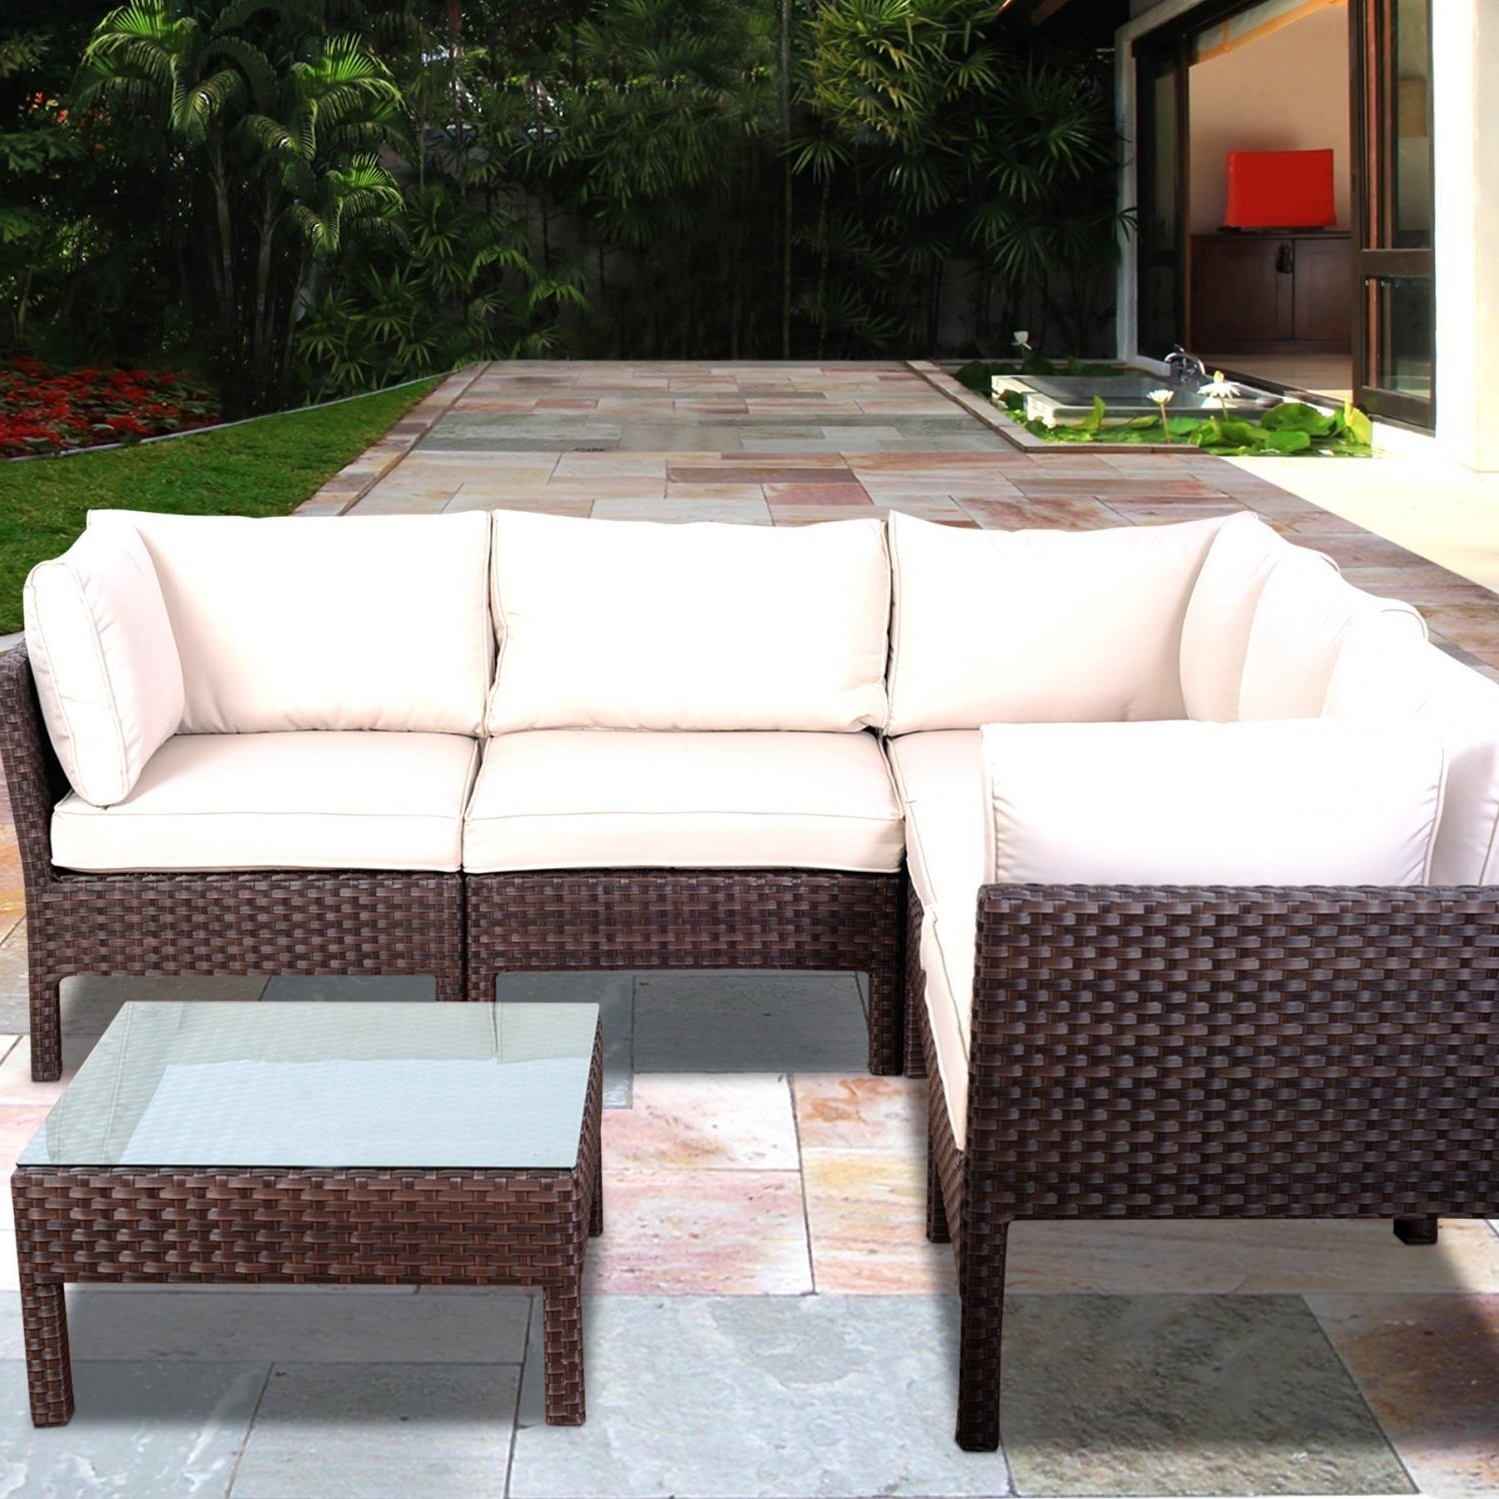 Well Known Conversation Patio Sets With Outdoor Sectionals Regarding Atlantic Infinity 5 Person Resin Wicker Patio Sectional Set (View 13 of 15)